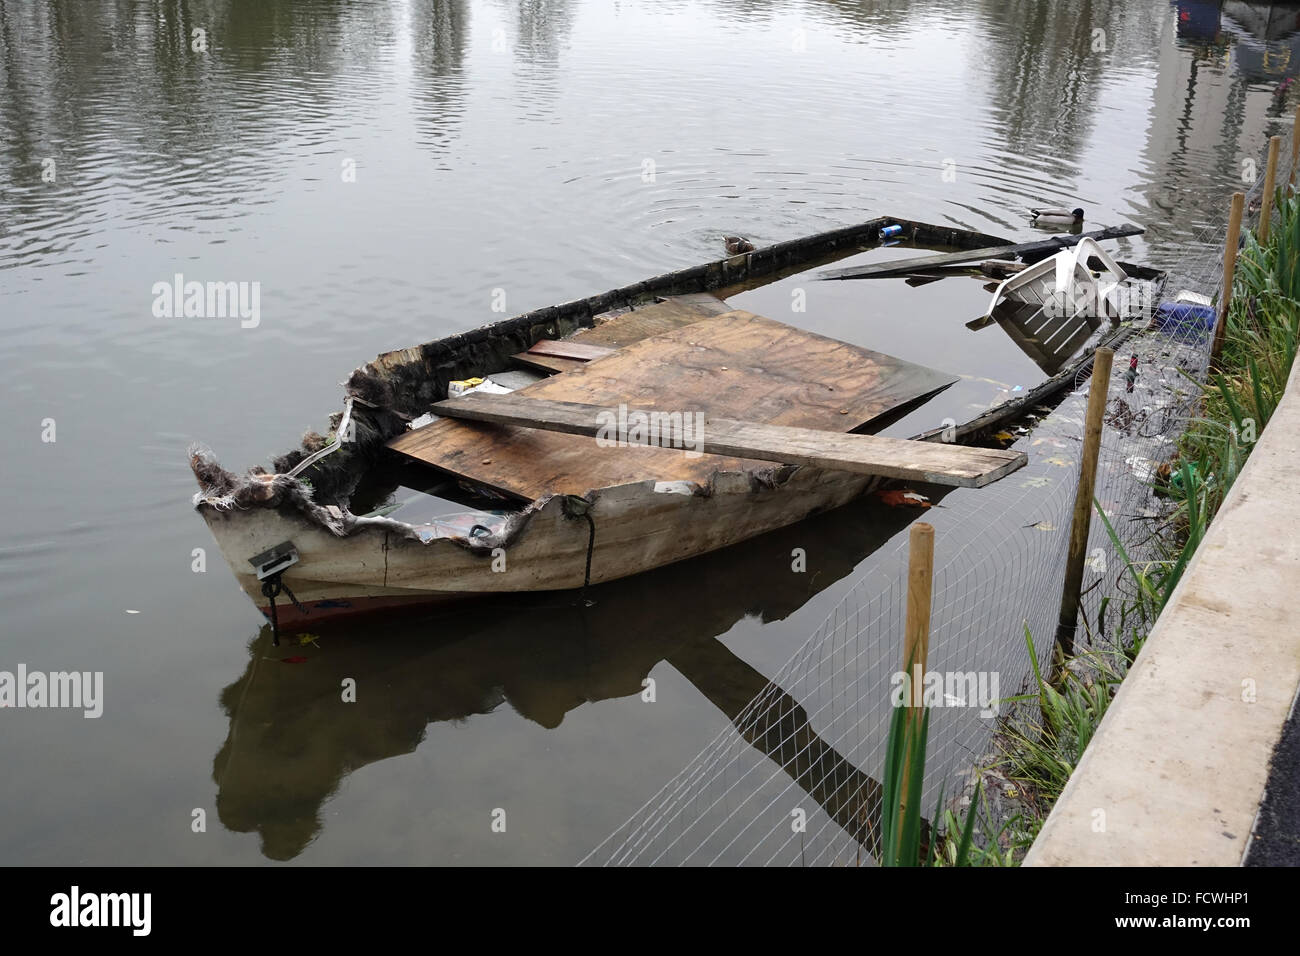 Derelict Boat in The Thames at Reading -1 - Stock Image